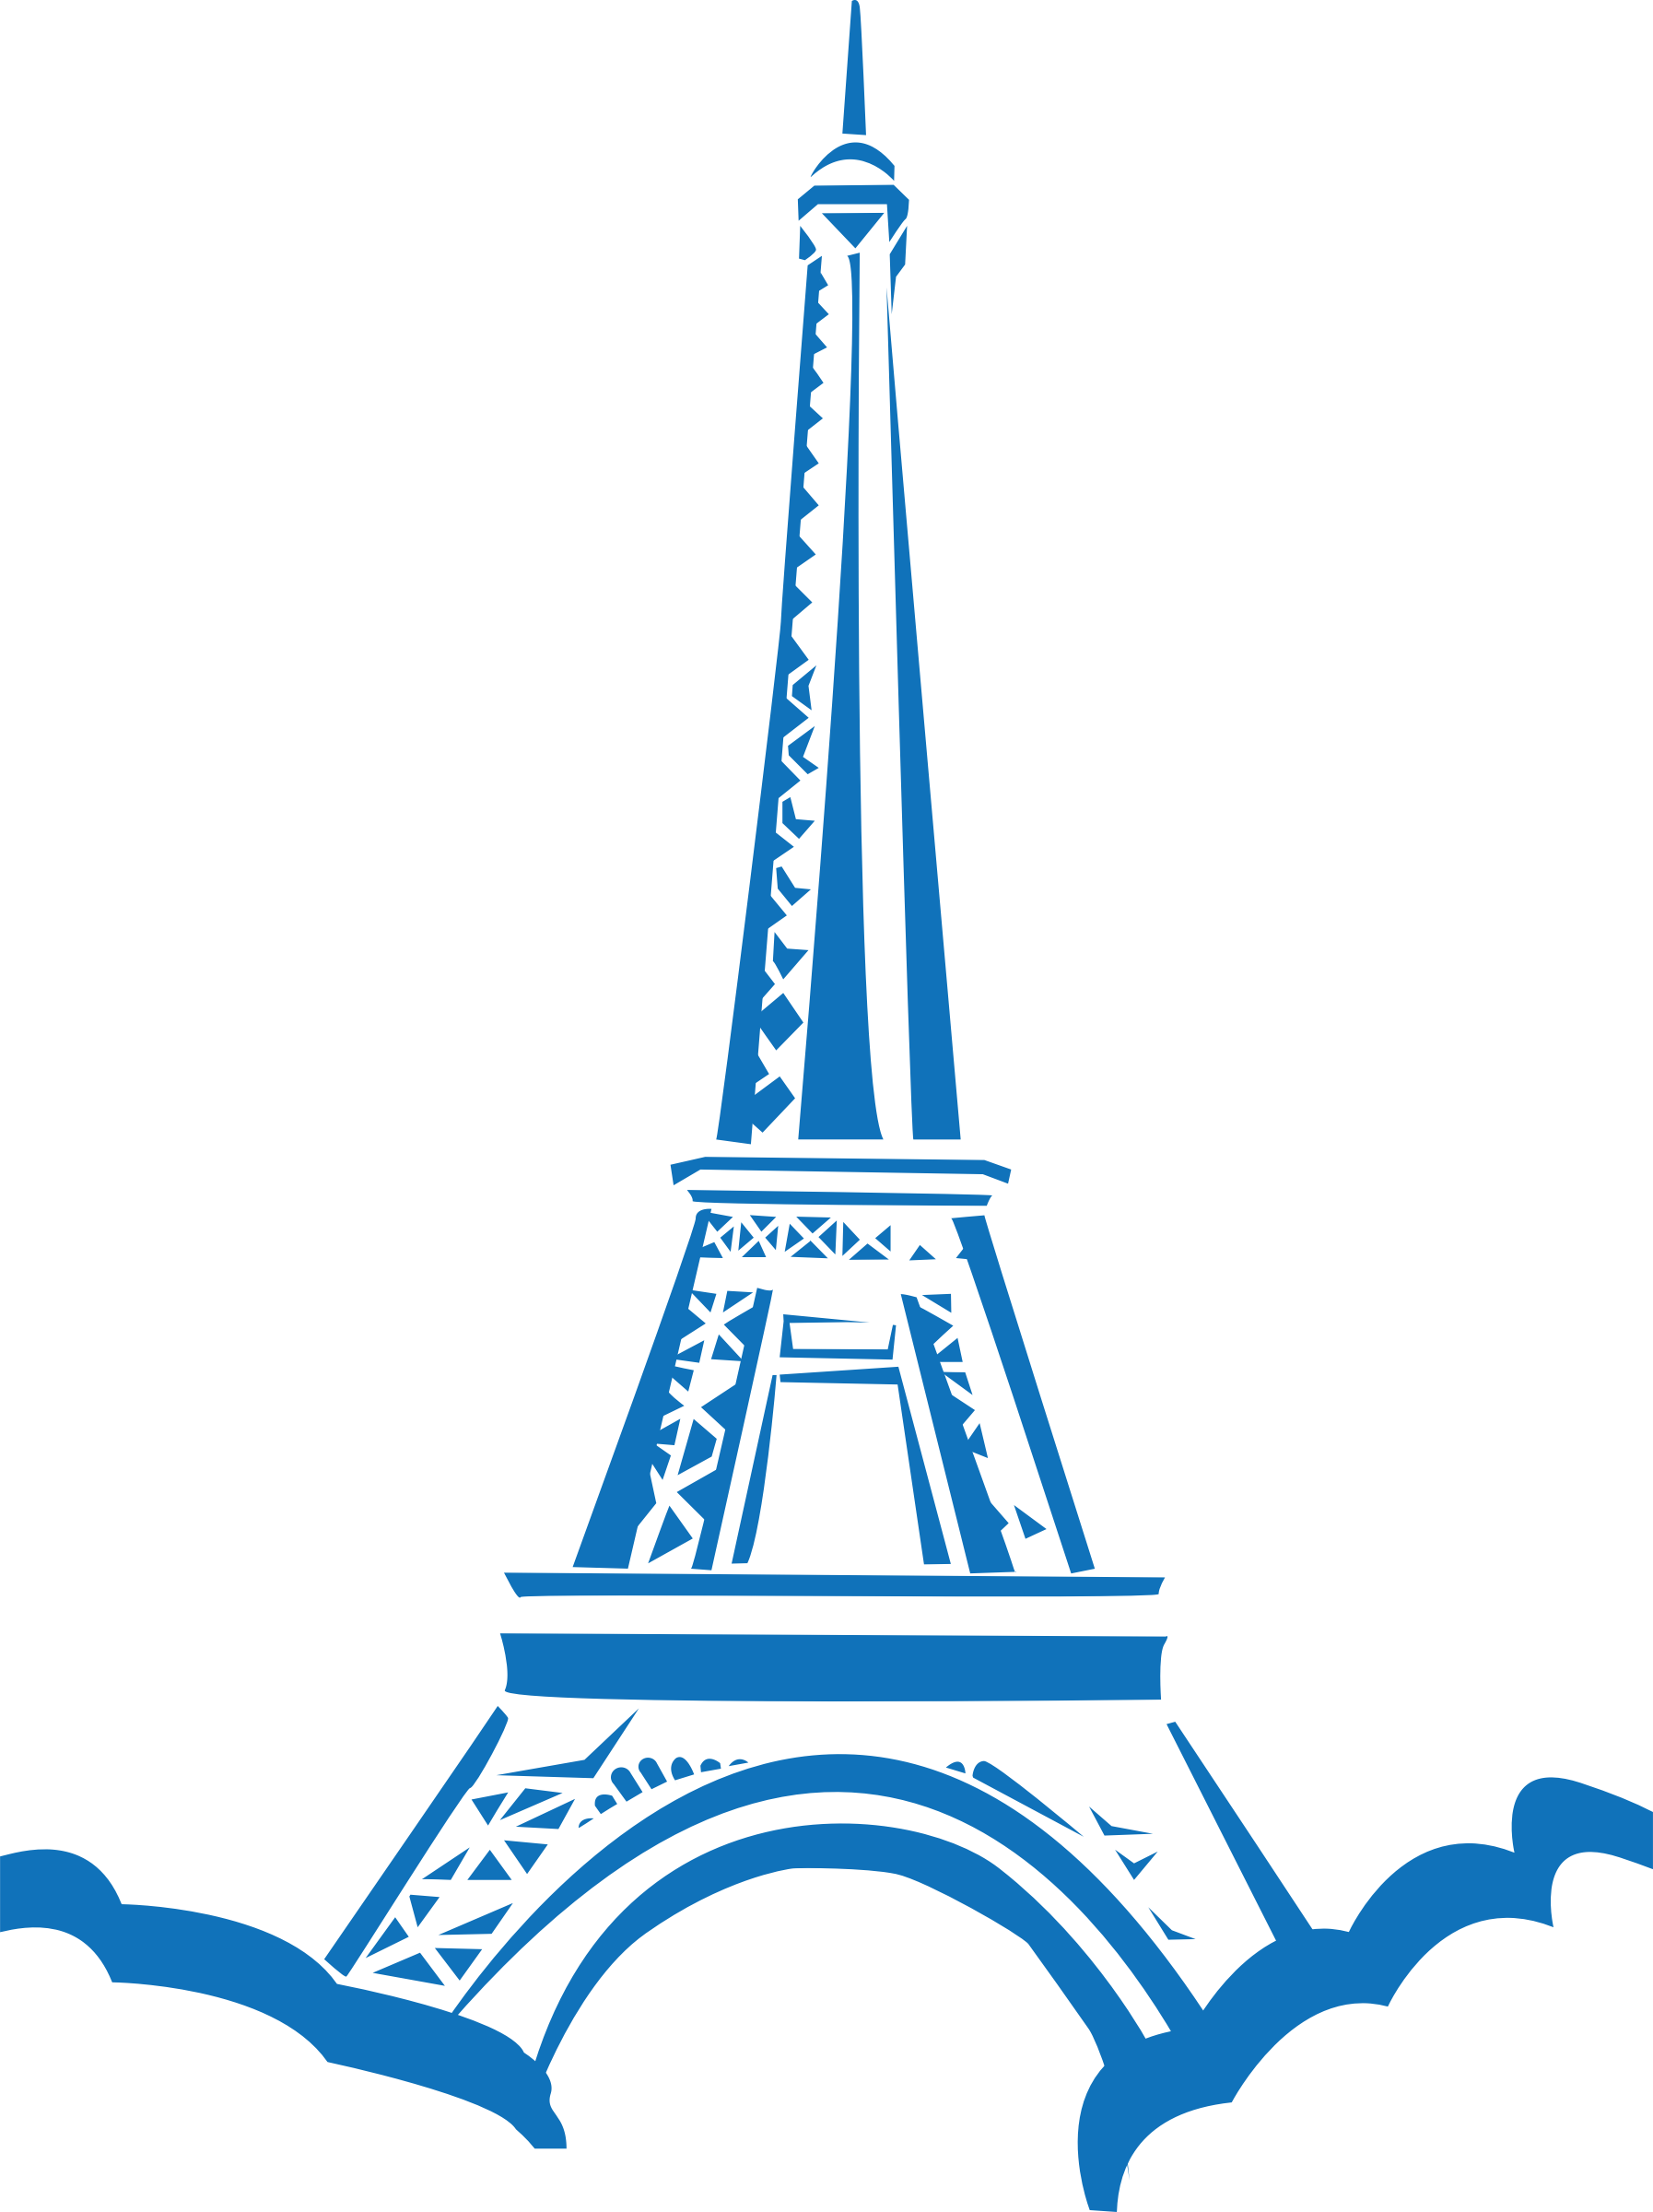 Tower svg